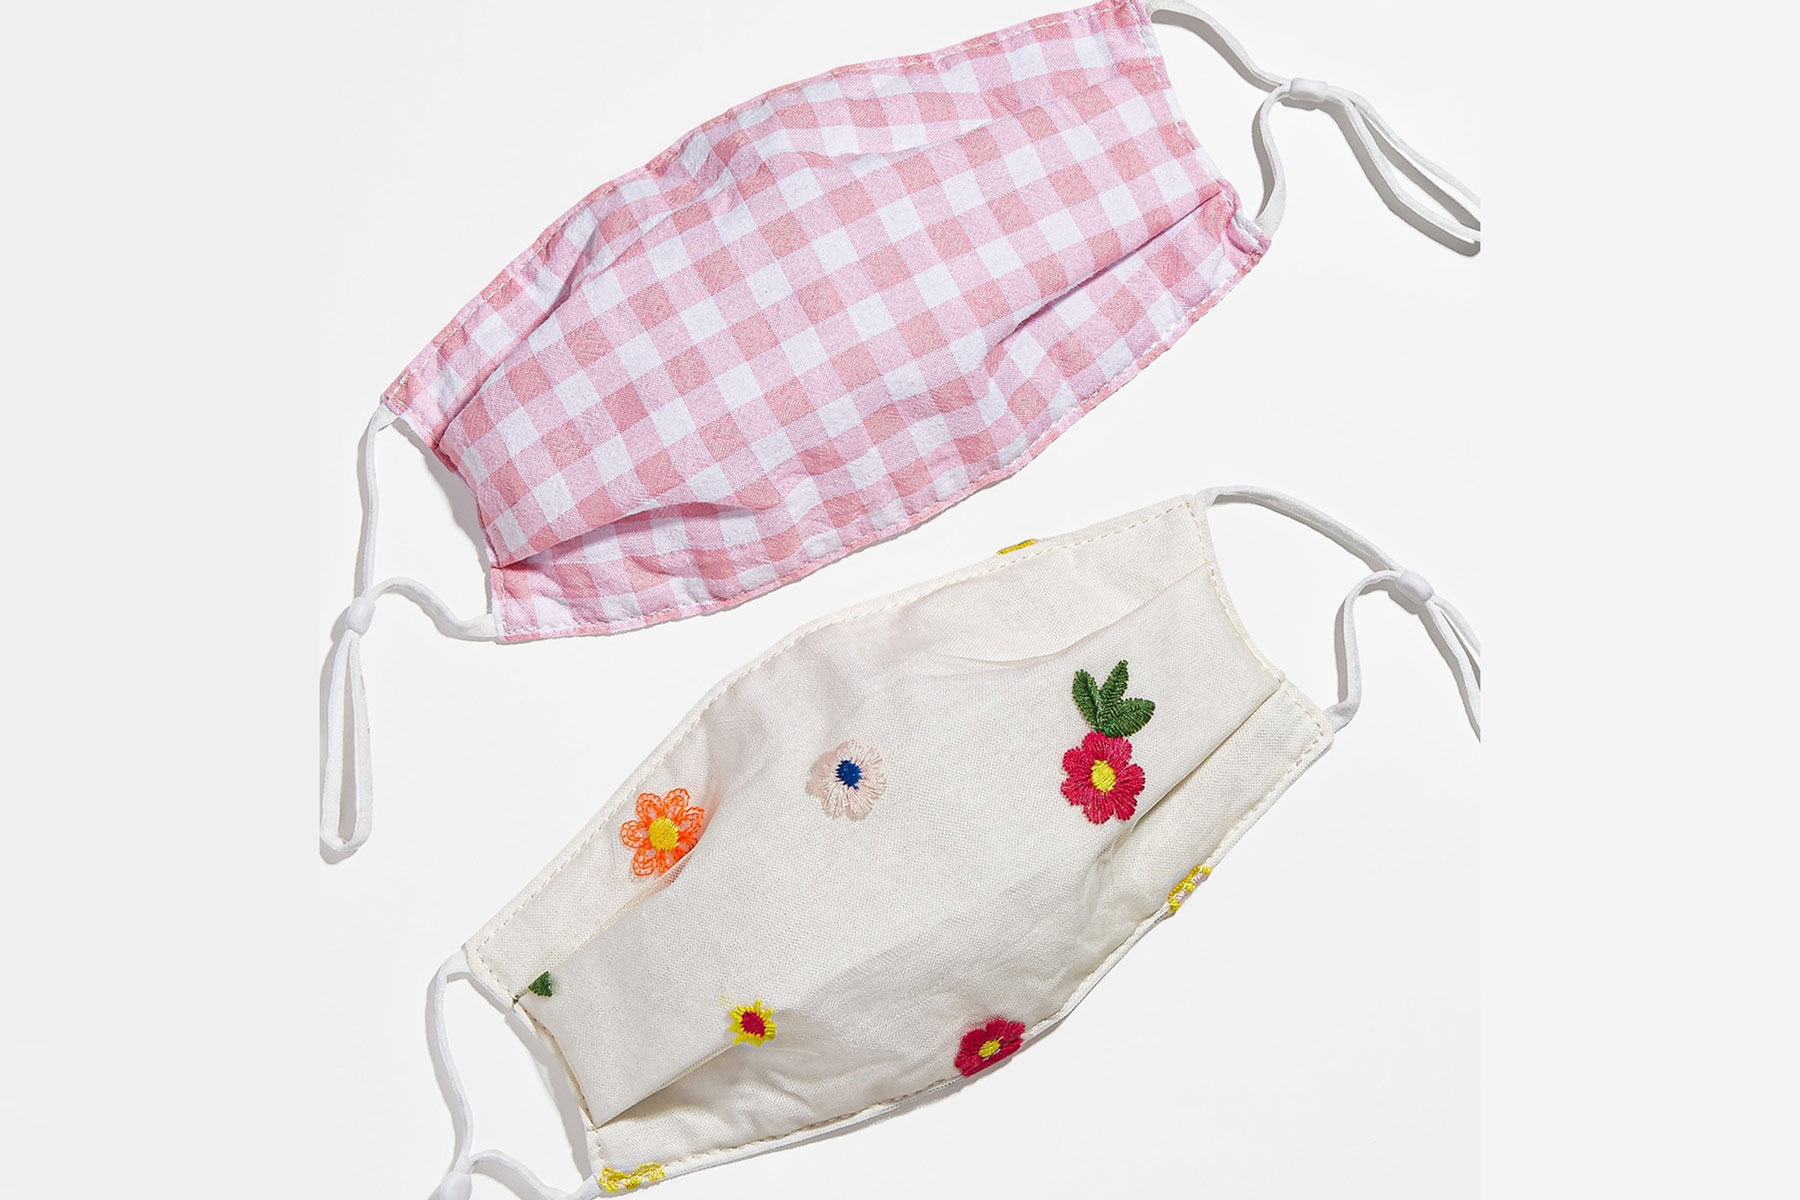 Pink and white patterned face masks